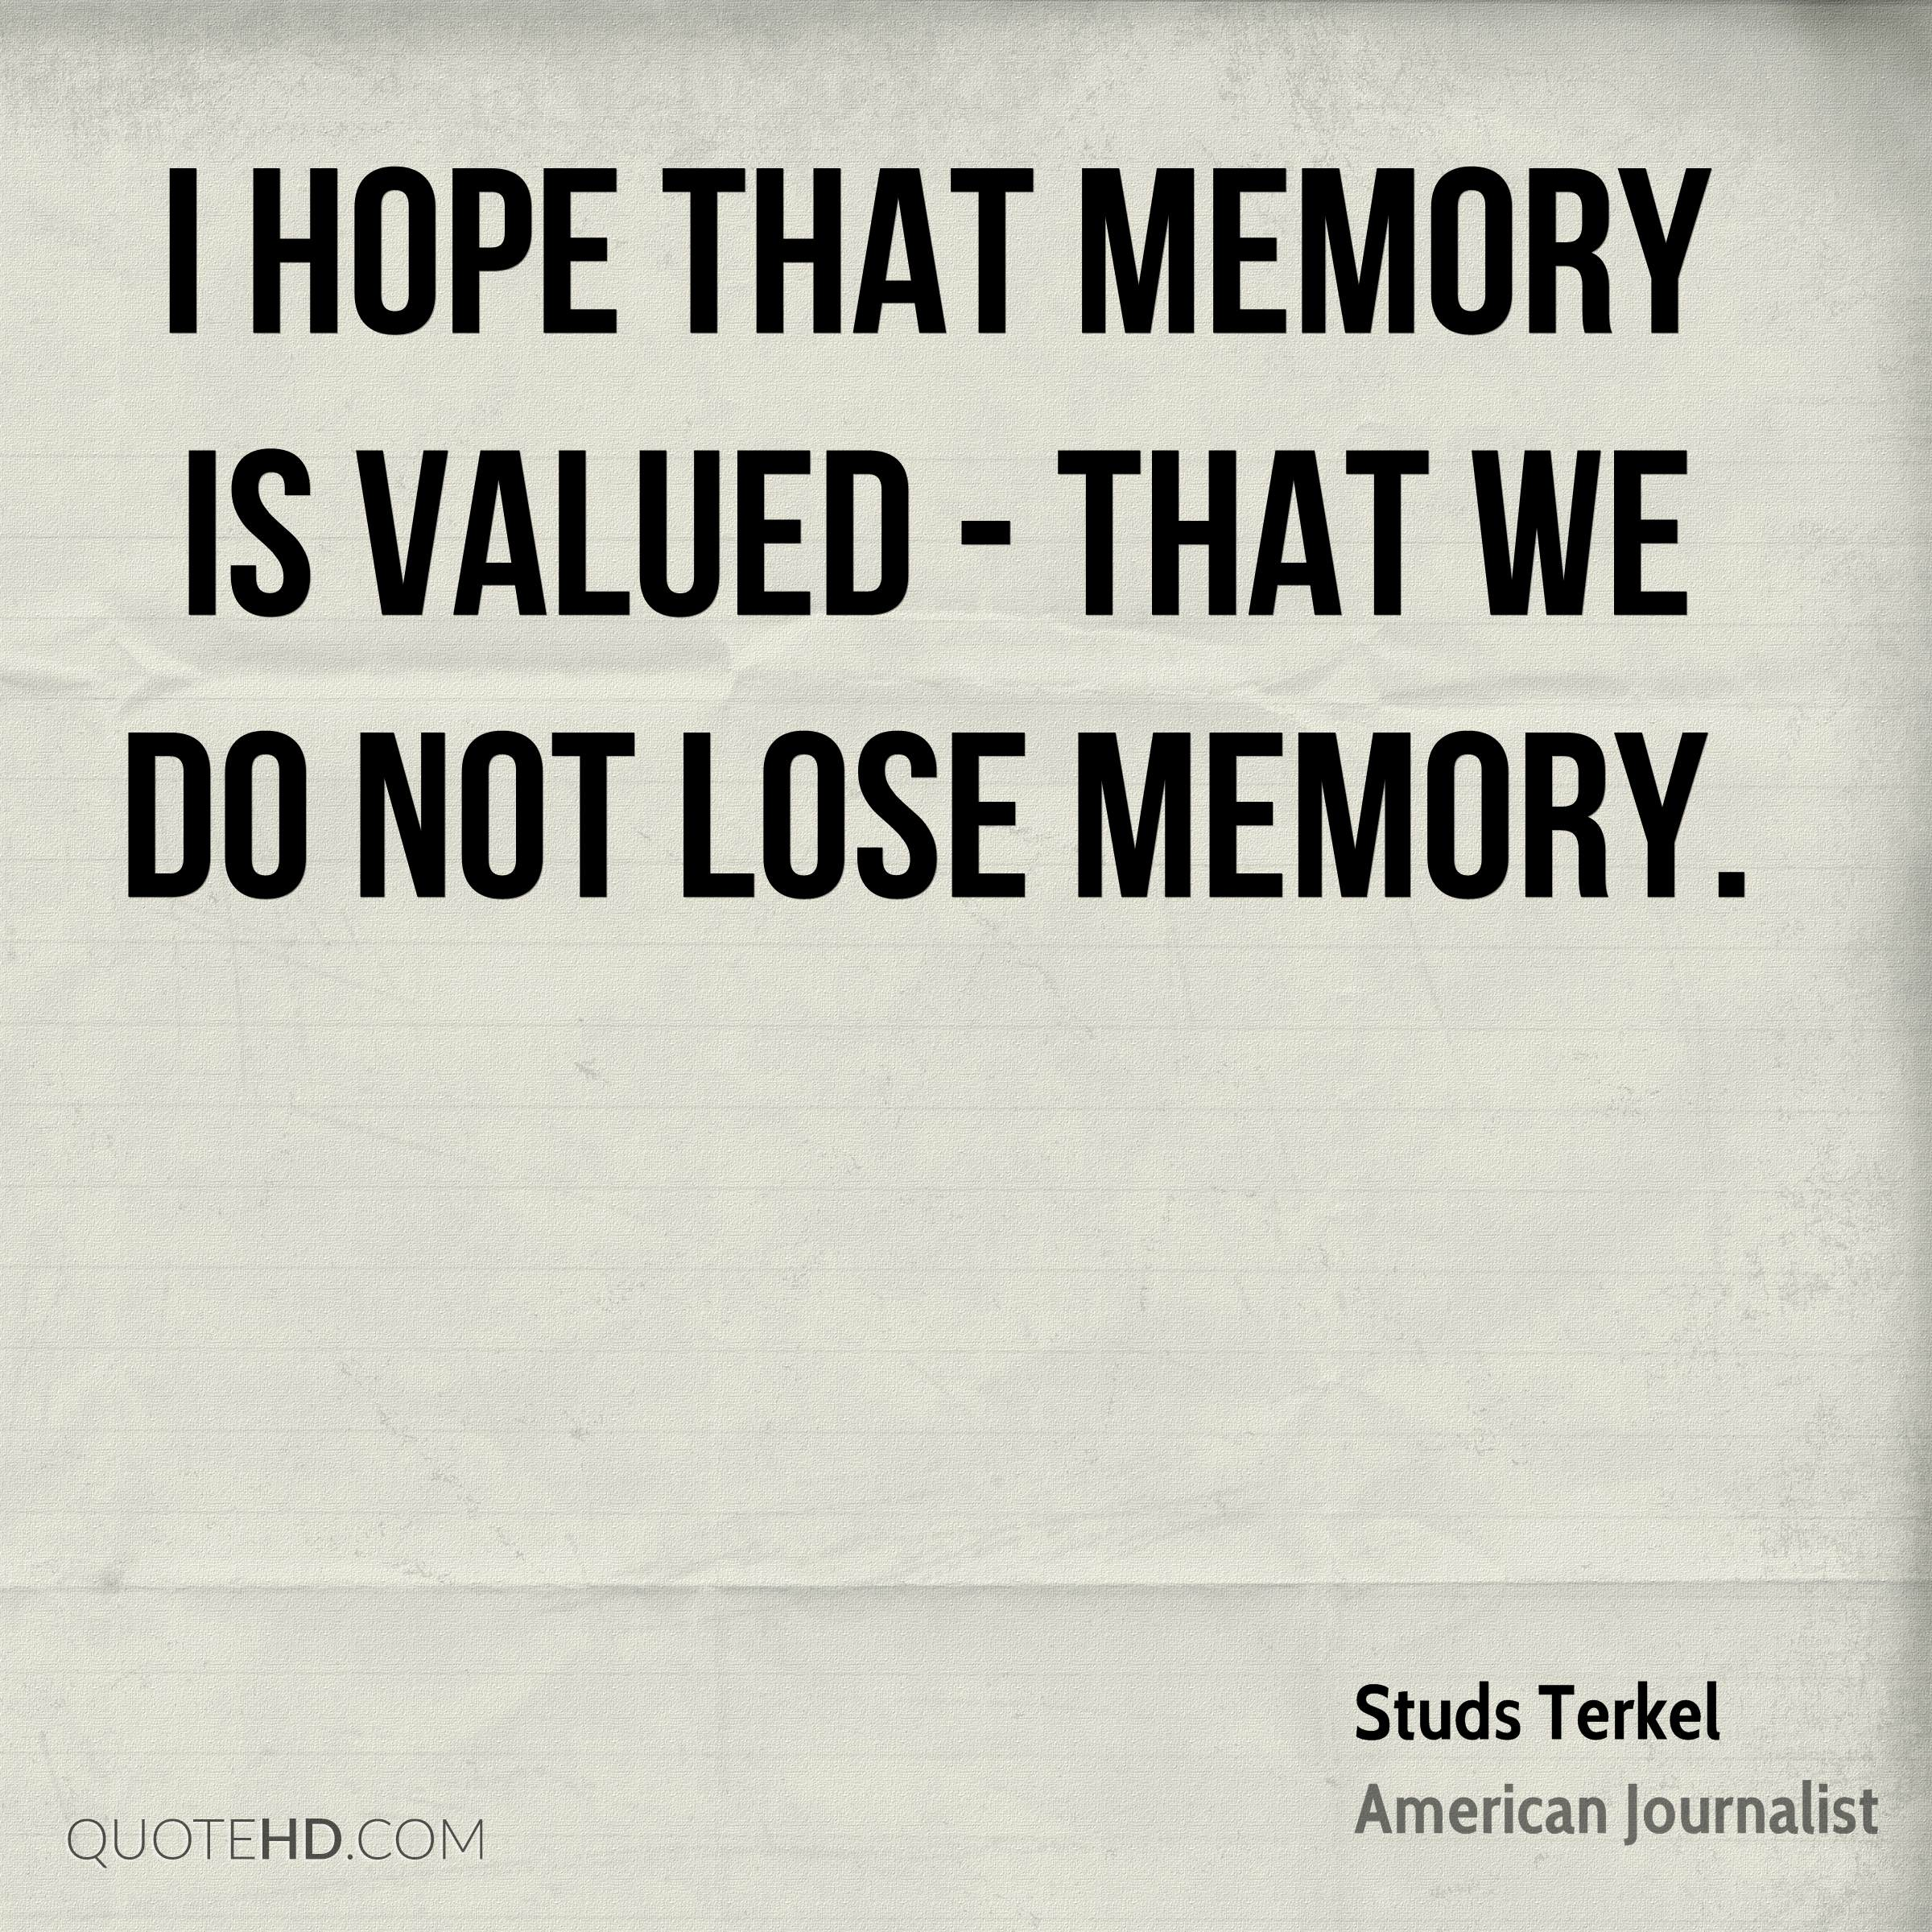 I hope that memory is valued - that we do not lose memory.